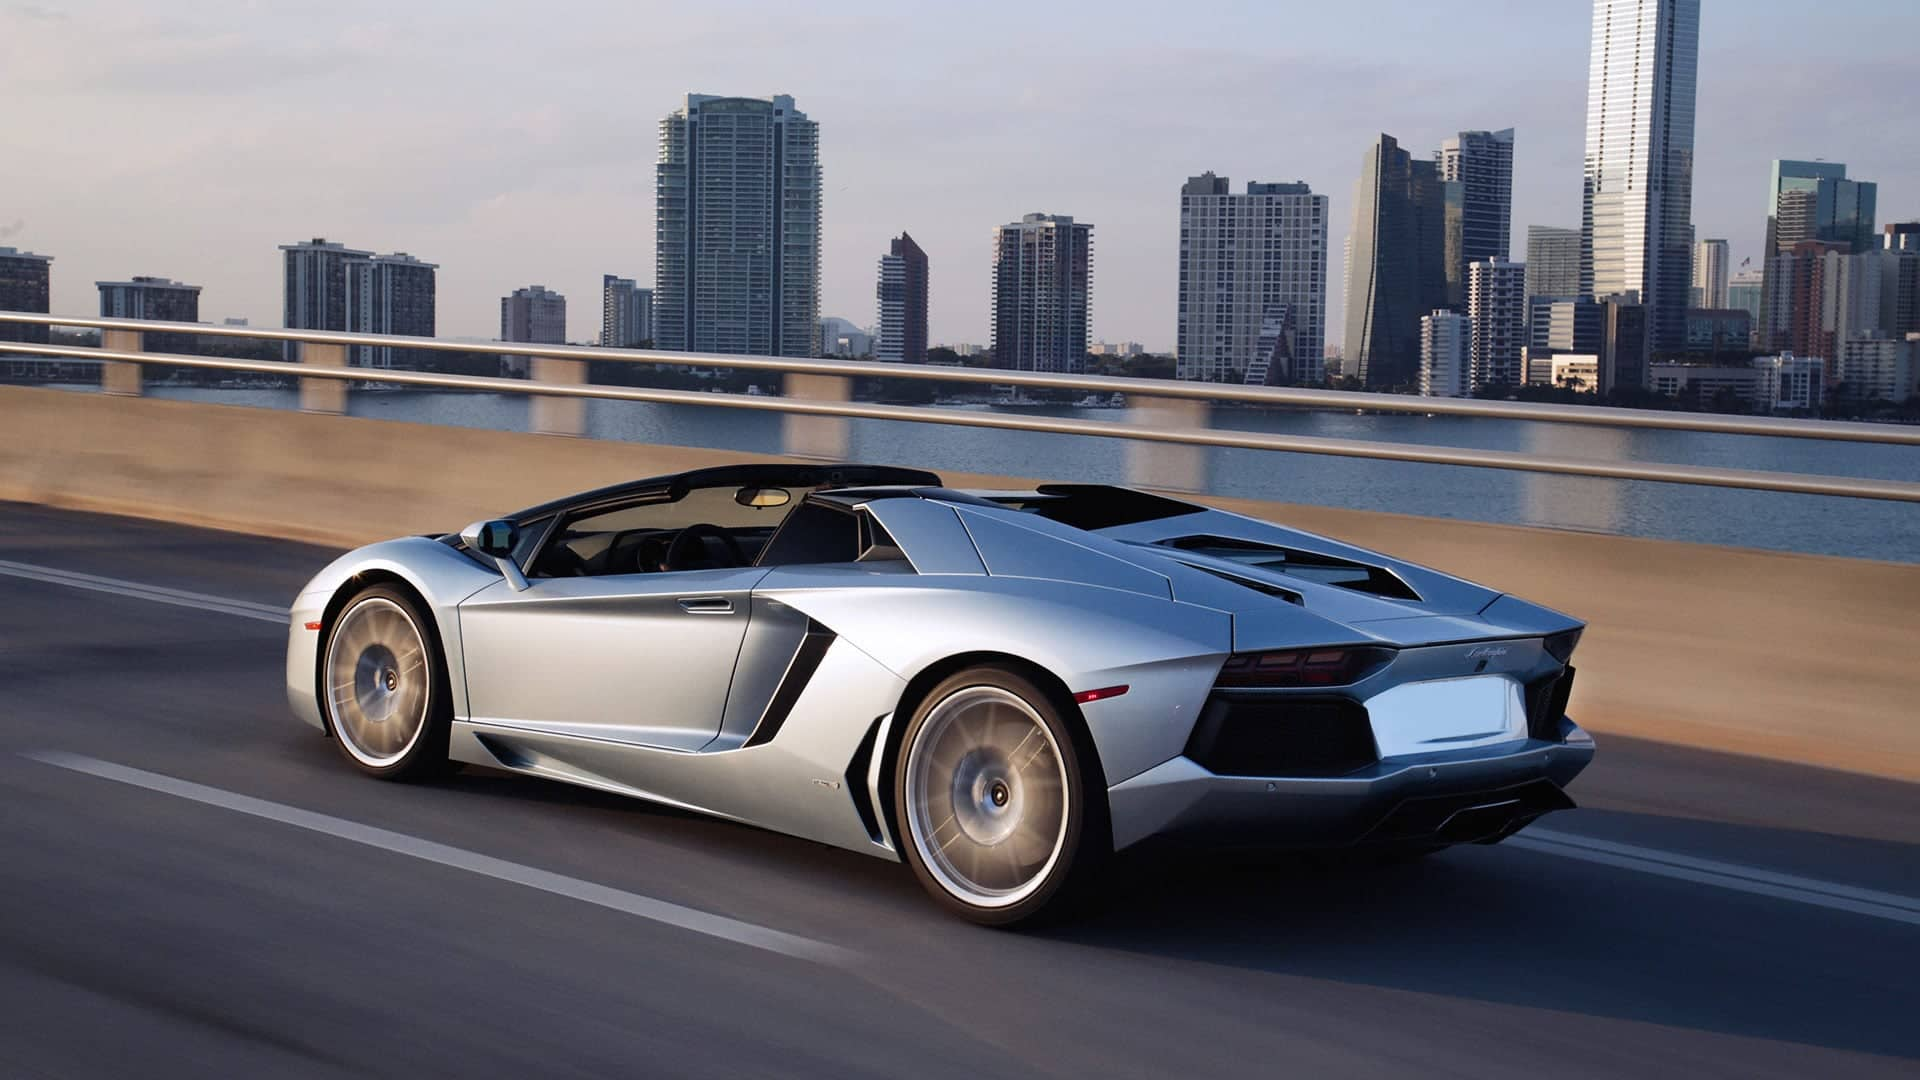 Lamborghini Aventador Roadster Pictures Videos